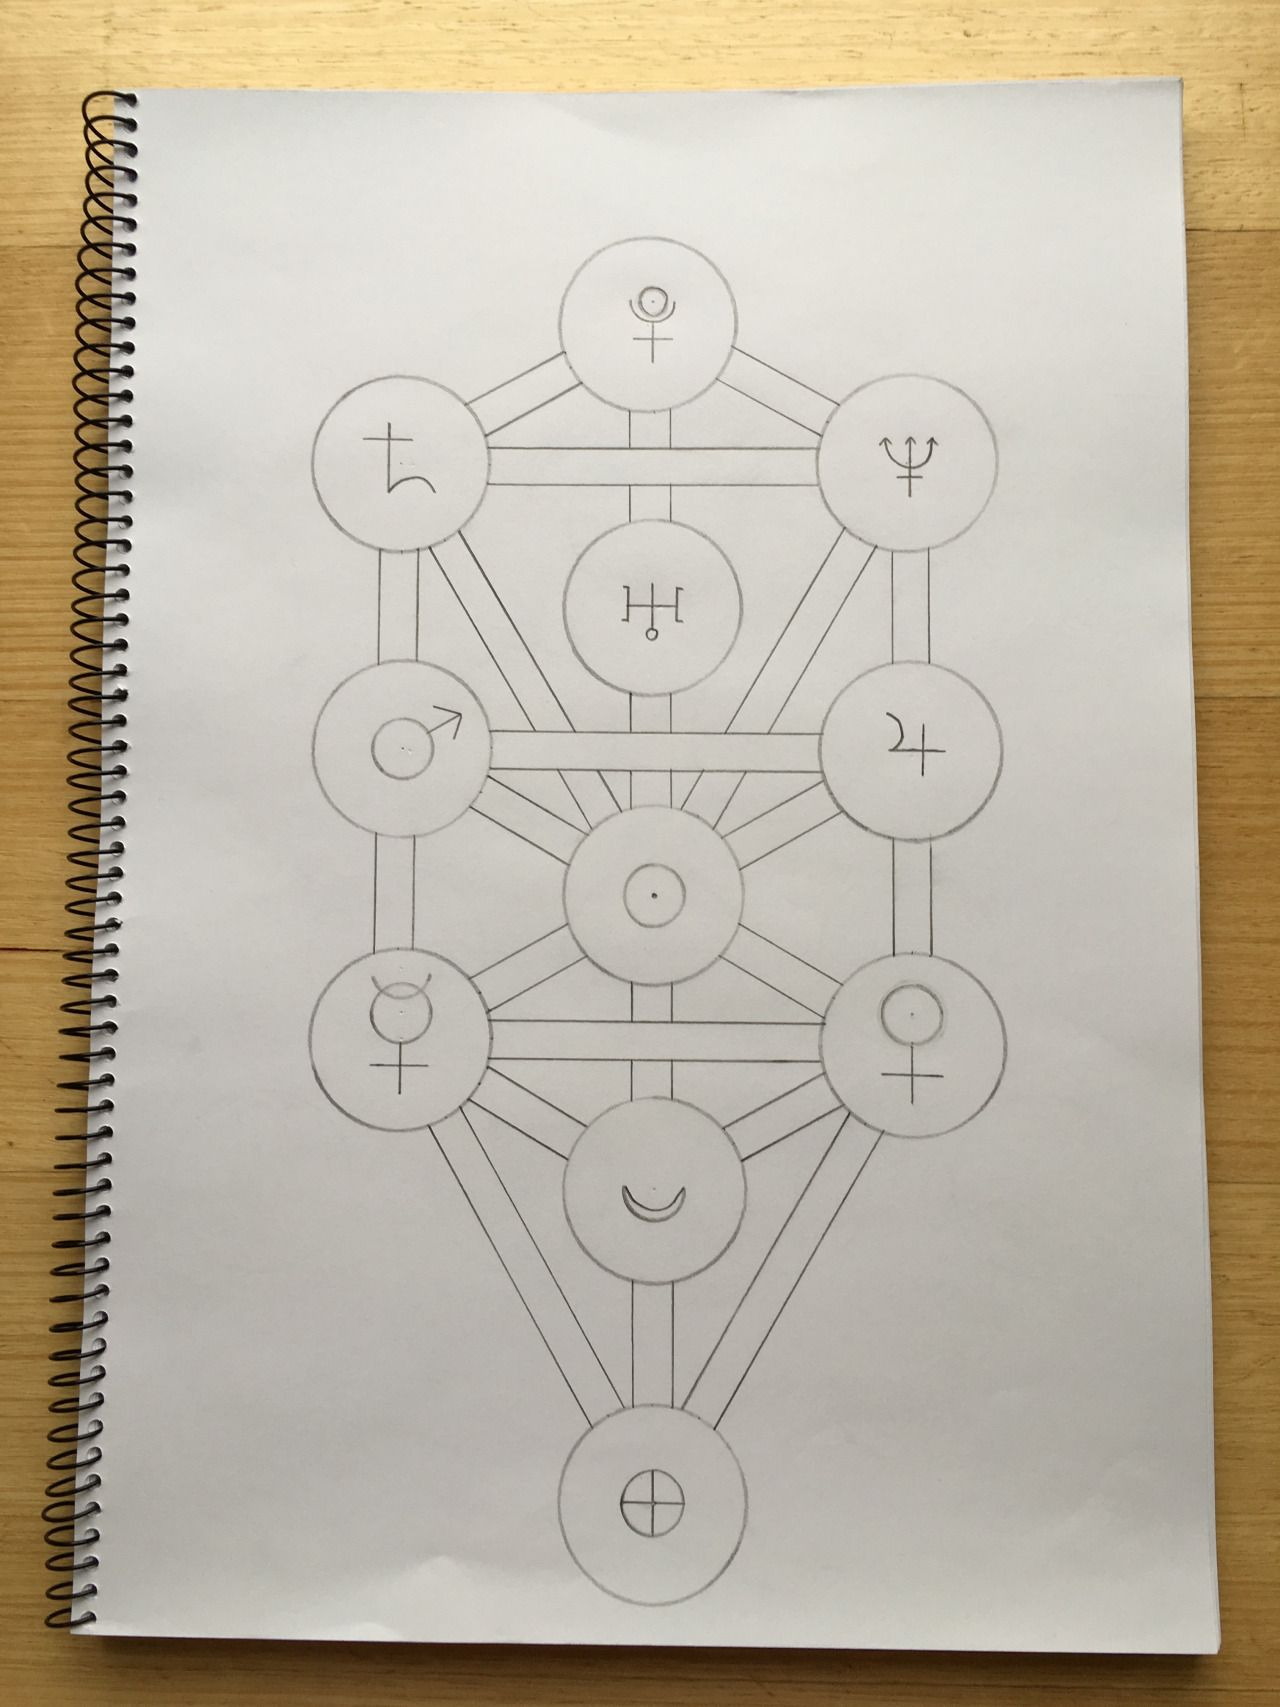 medium resolution of kabbalistic tree of life this diagram can be used as a map of whatever system you are working with whether the microcosm yourself or the macrocosm the